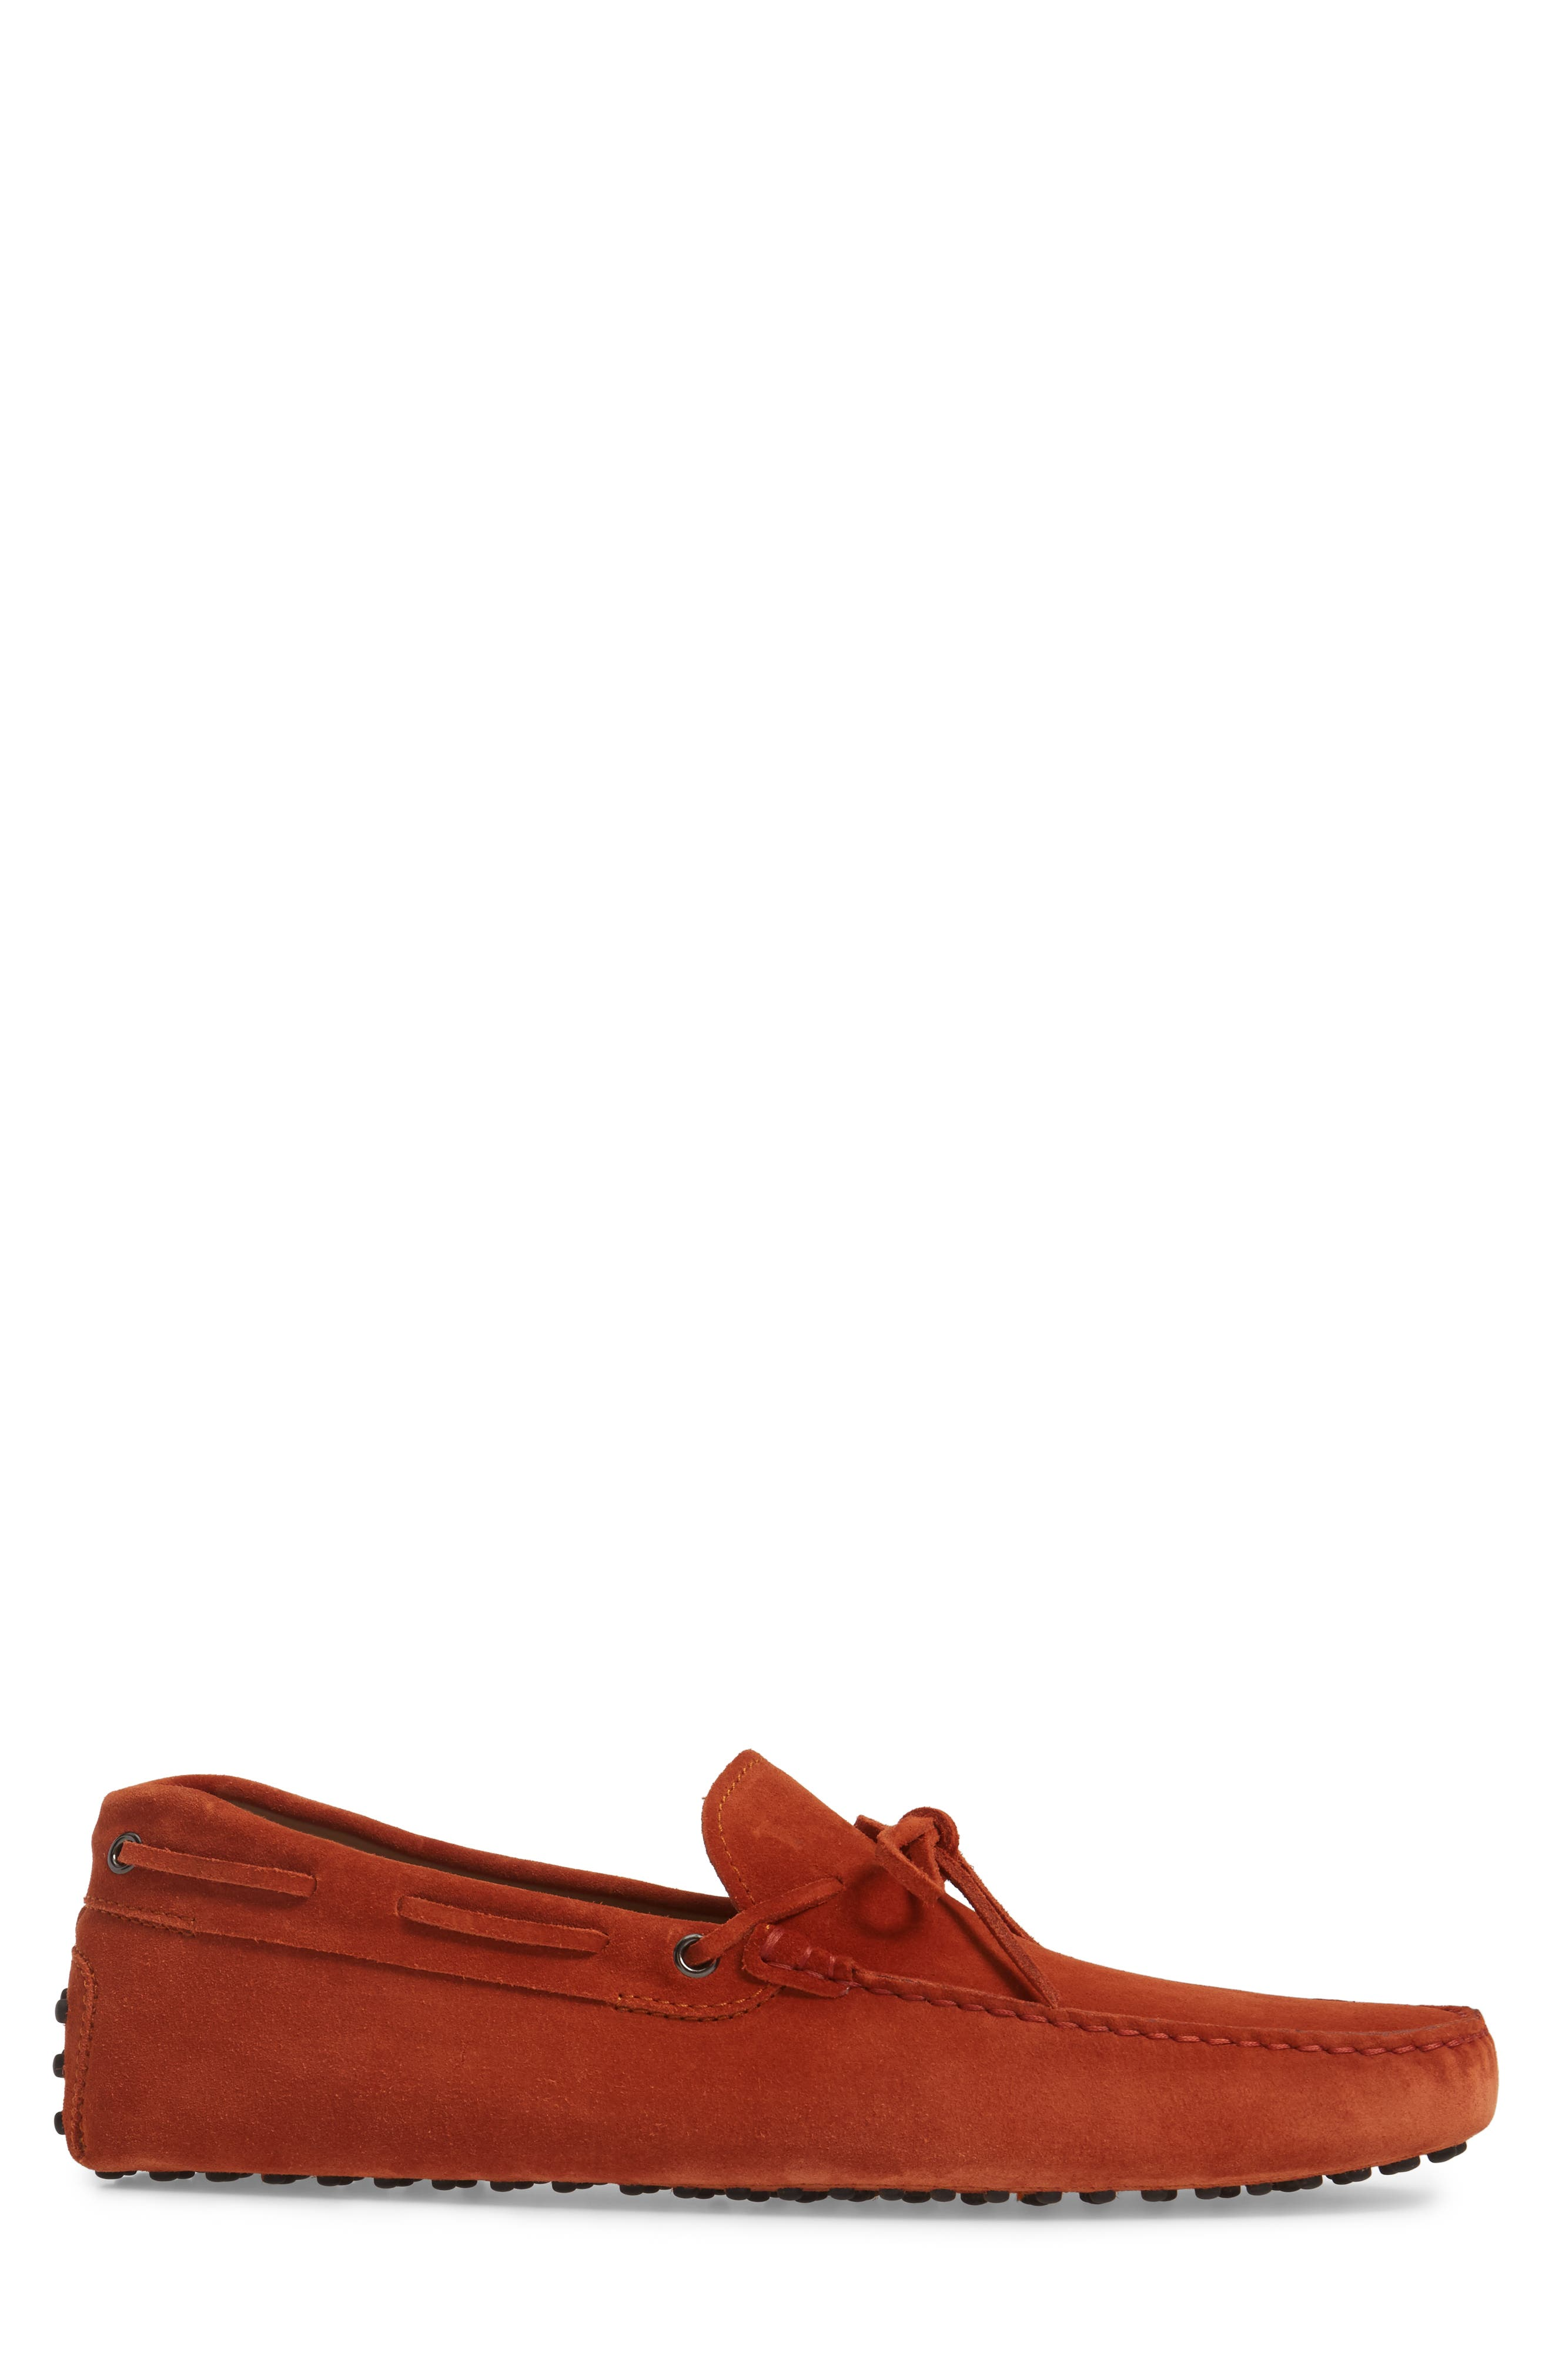 Gommini Tie Front Driving Moccasin,                             Alternate thumbnail 64, color,